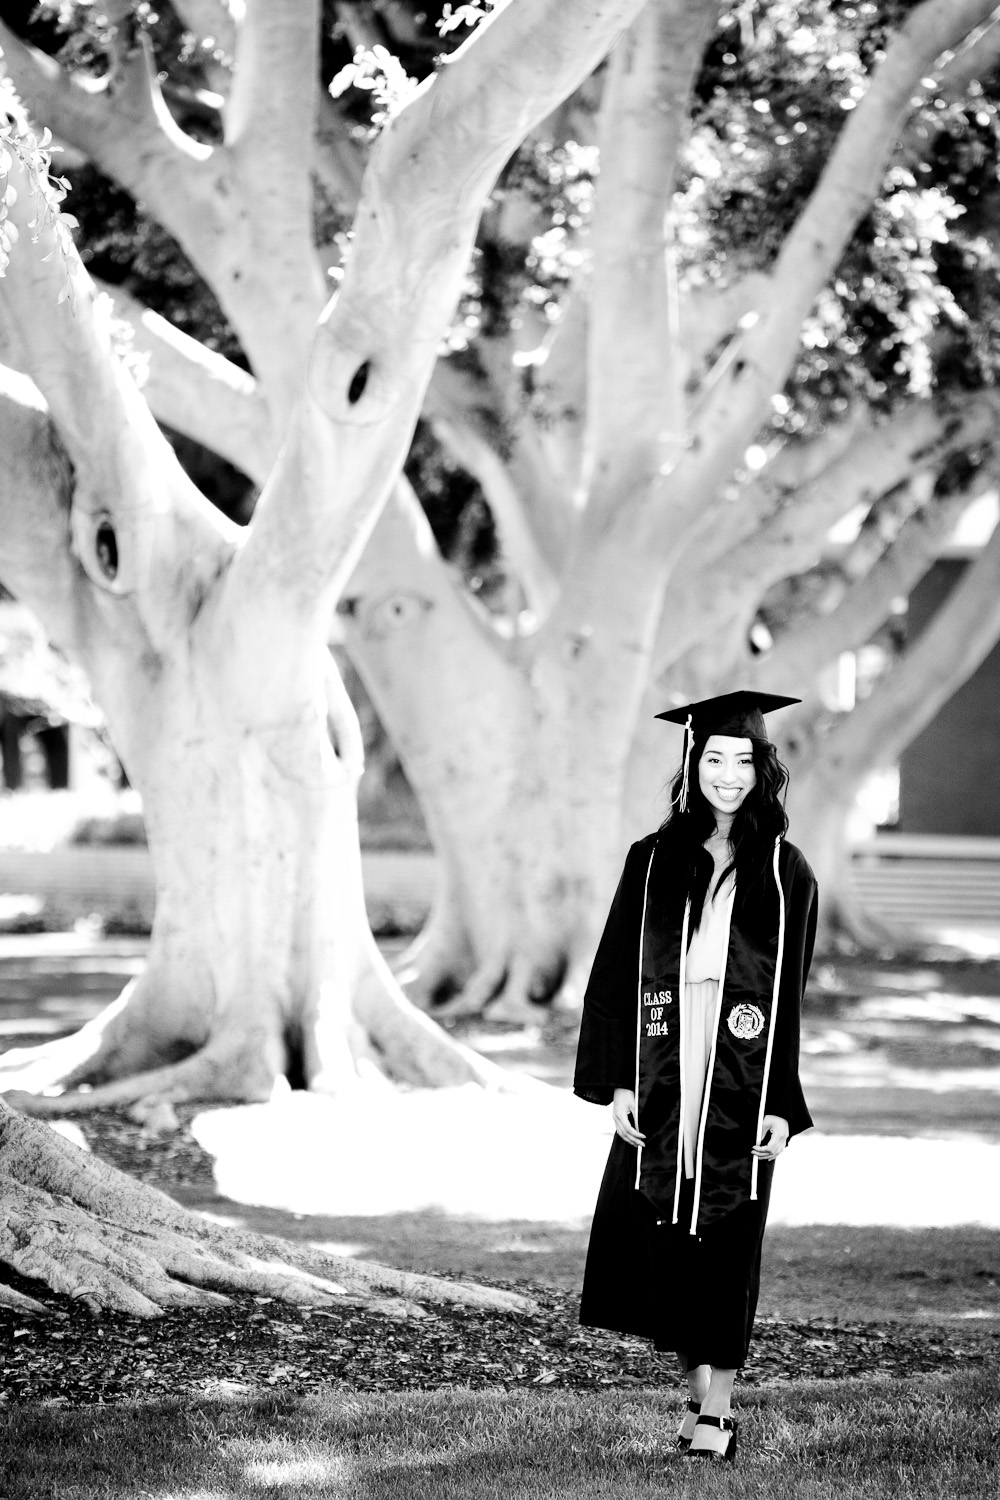 Bryan-Miraflor-Photography-Chelsea-Chow-Grad-Pictures-CSULB-20140430-0036.jpg